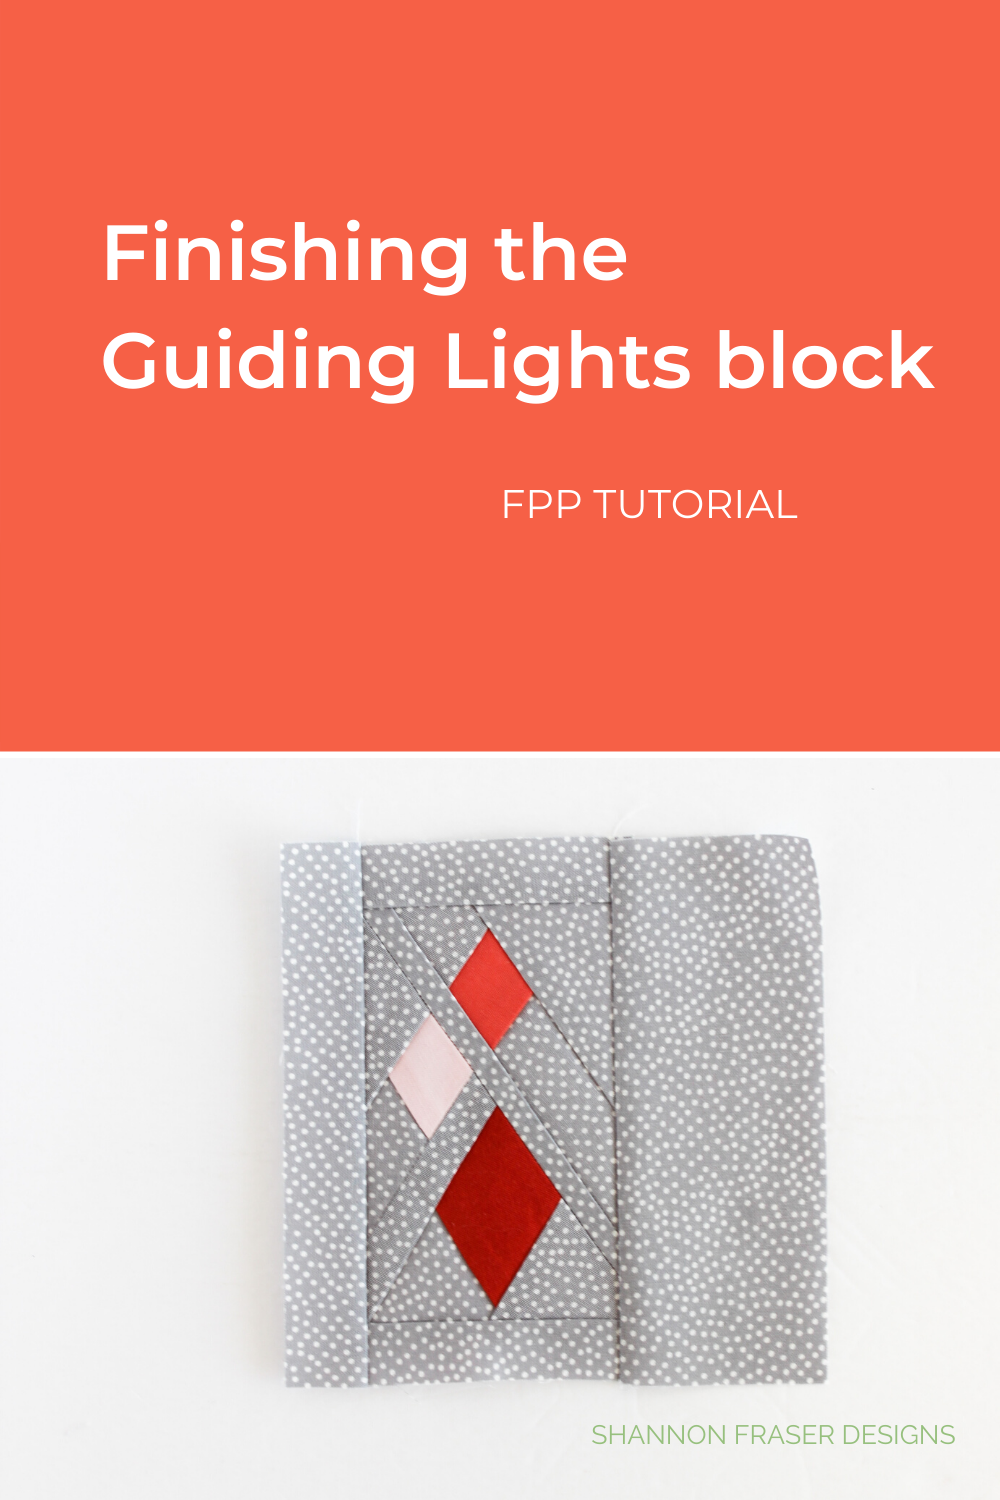 How to finish piecing the Guiding Lights FPP quilt block | Ultimate Foundation Paper Piecing Tutorial | Shannon Fraser Designs